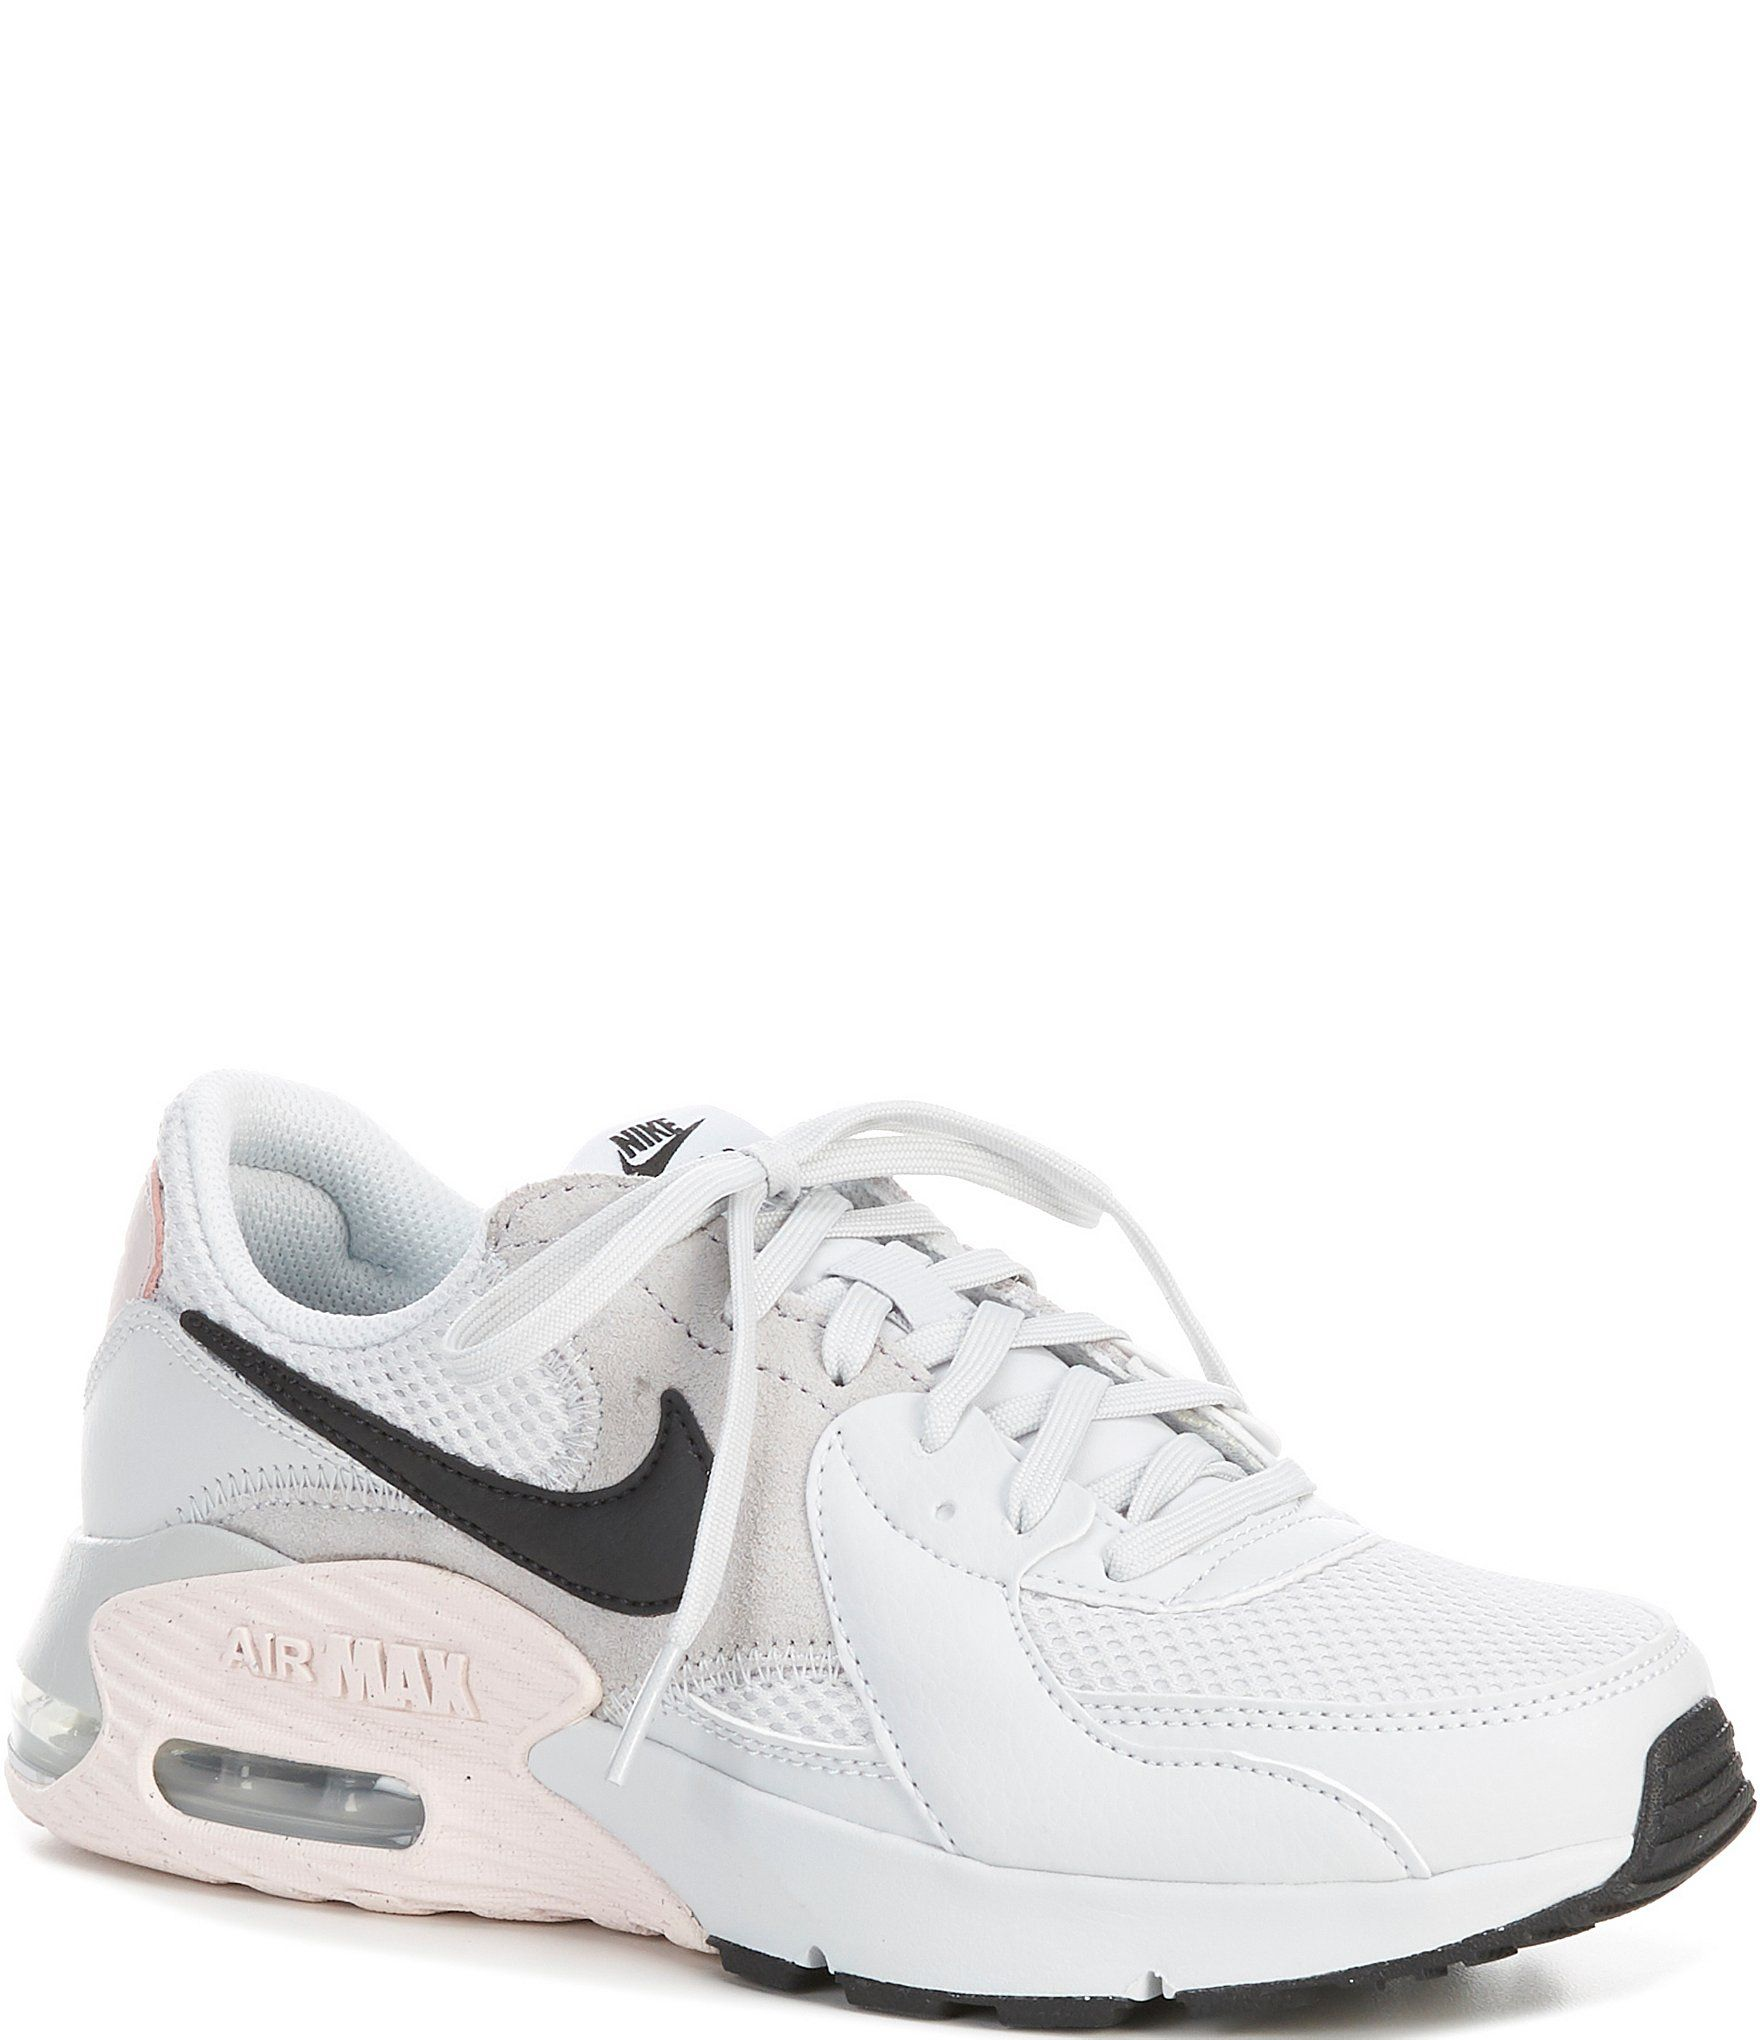 Nike Women's Air Max Excee Lifestyle Shoes Photo DustGrey